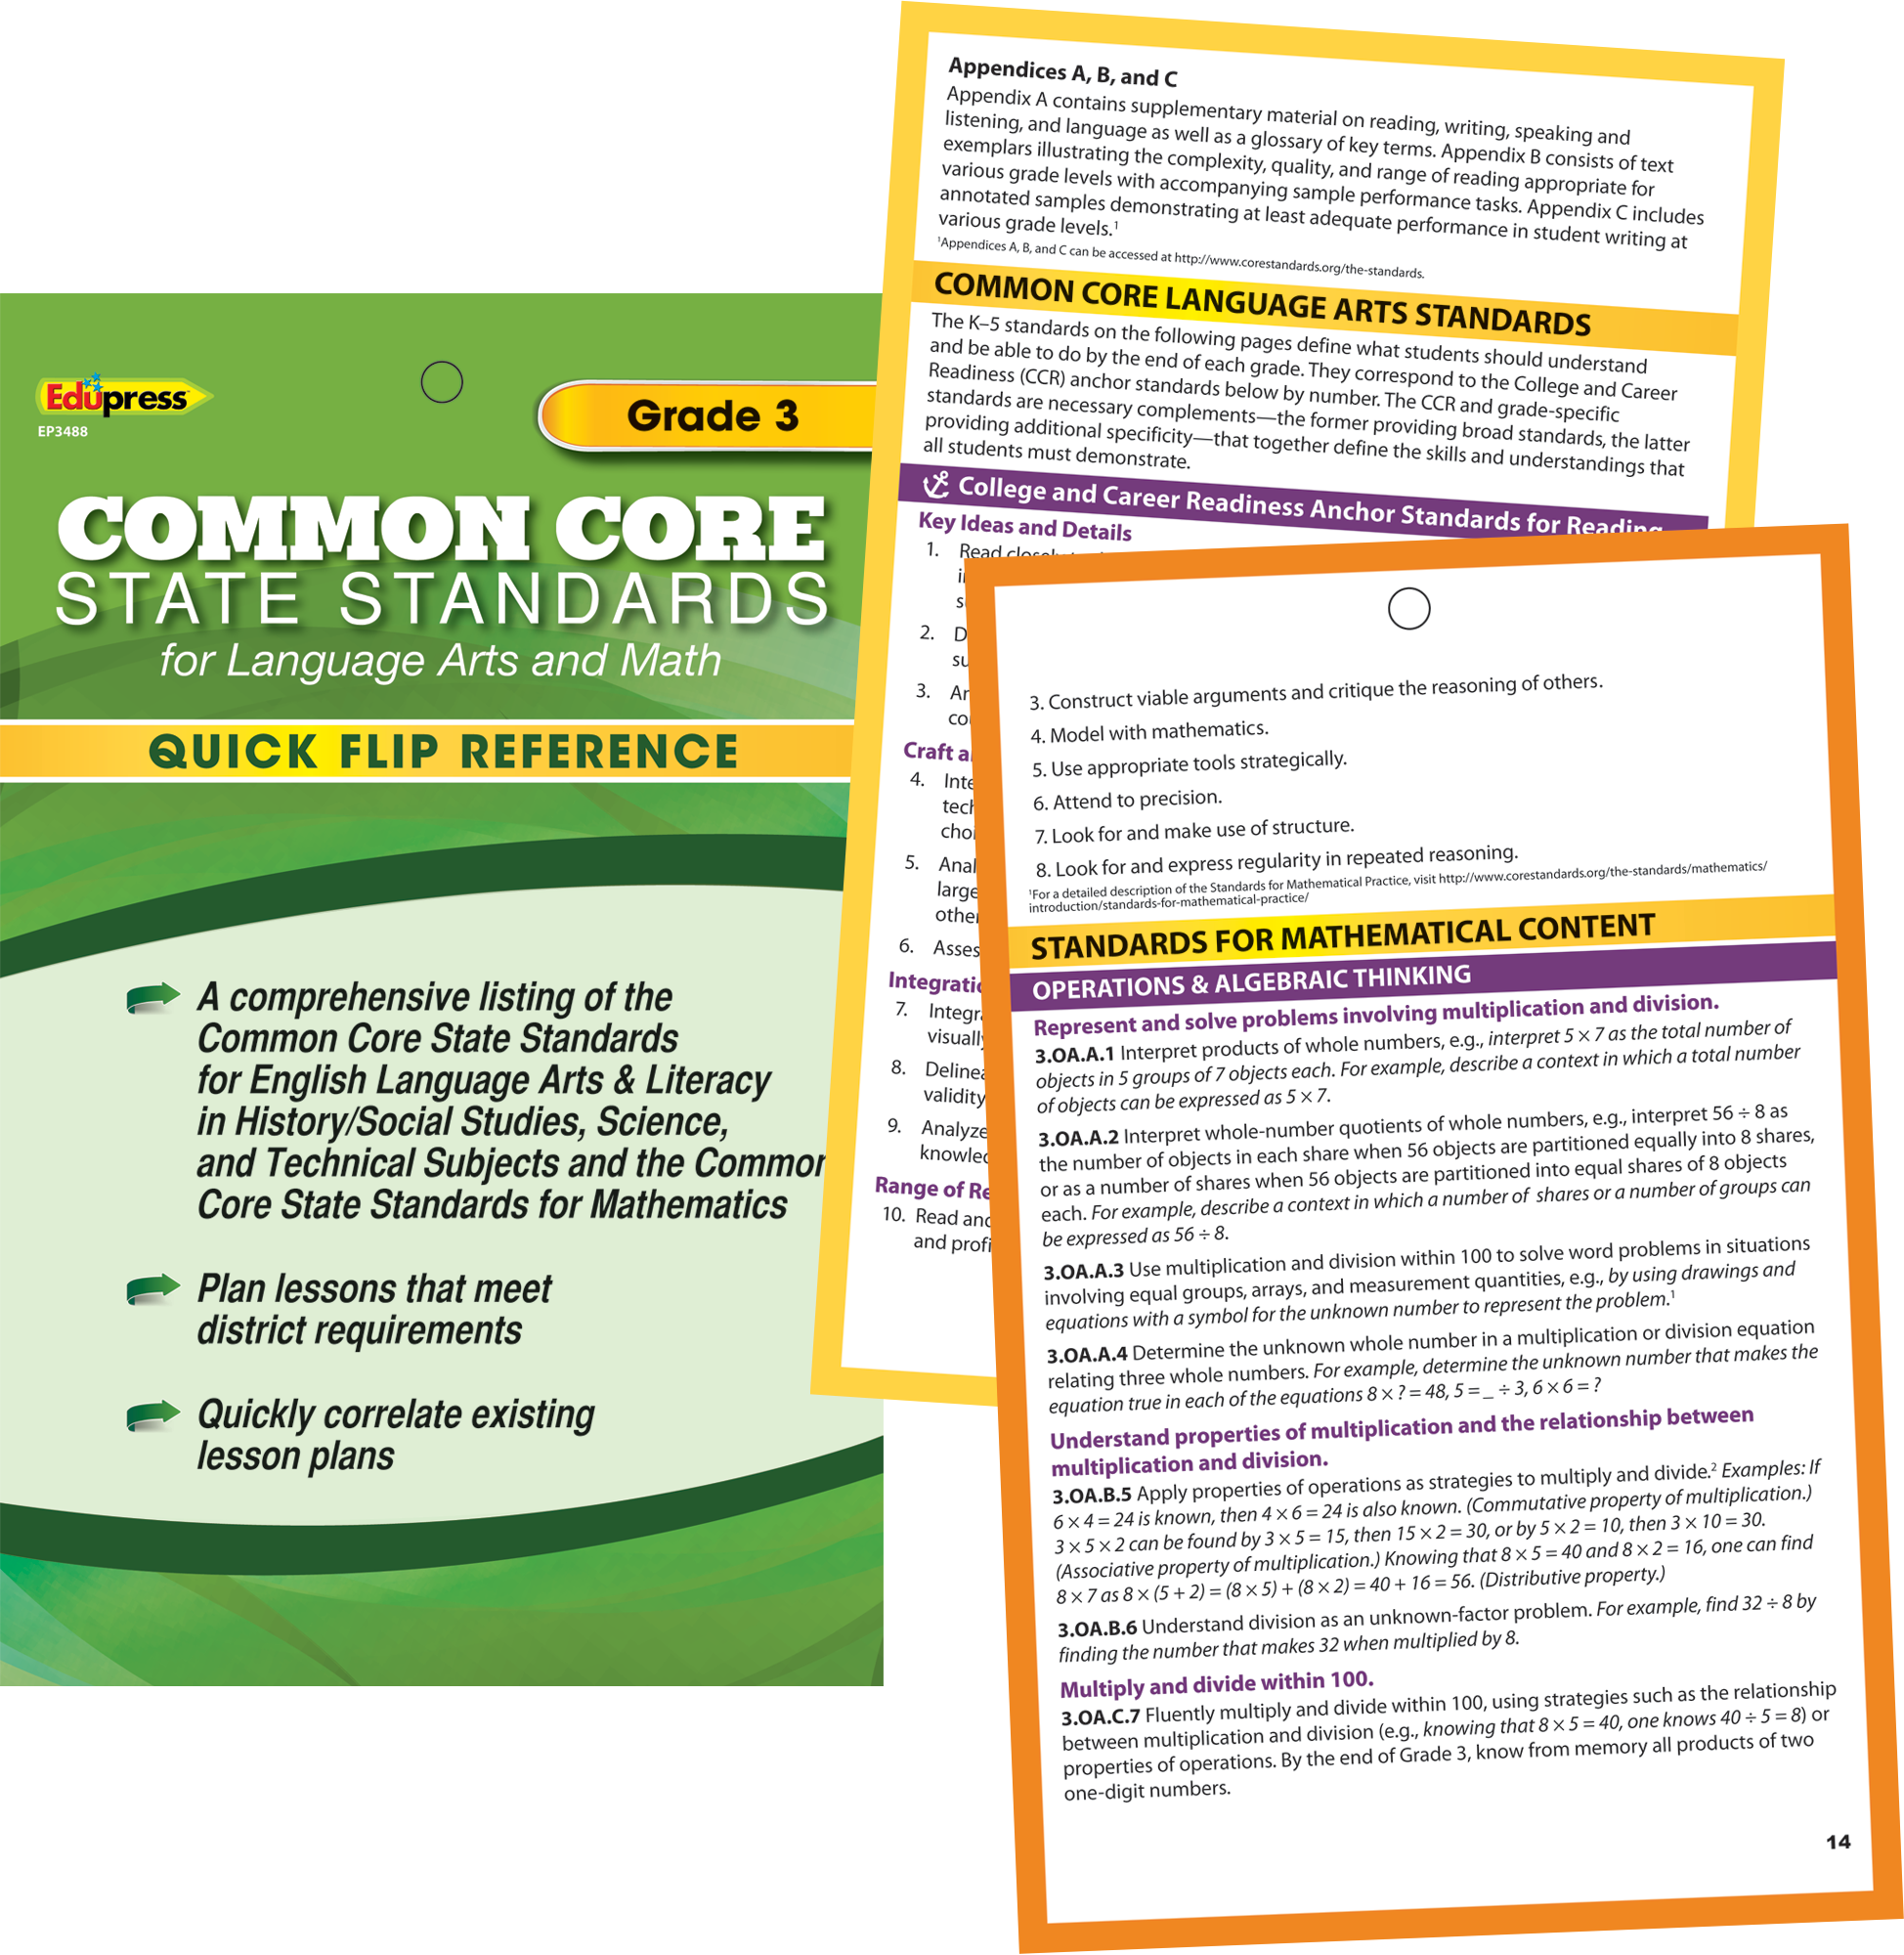 Quick Flip Reference for Common Core State Standards Grade 3